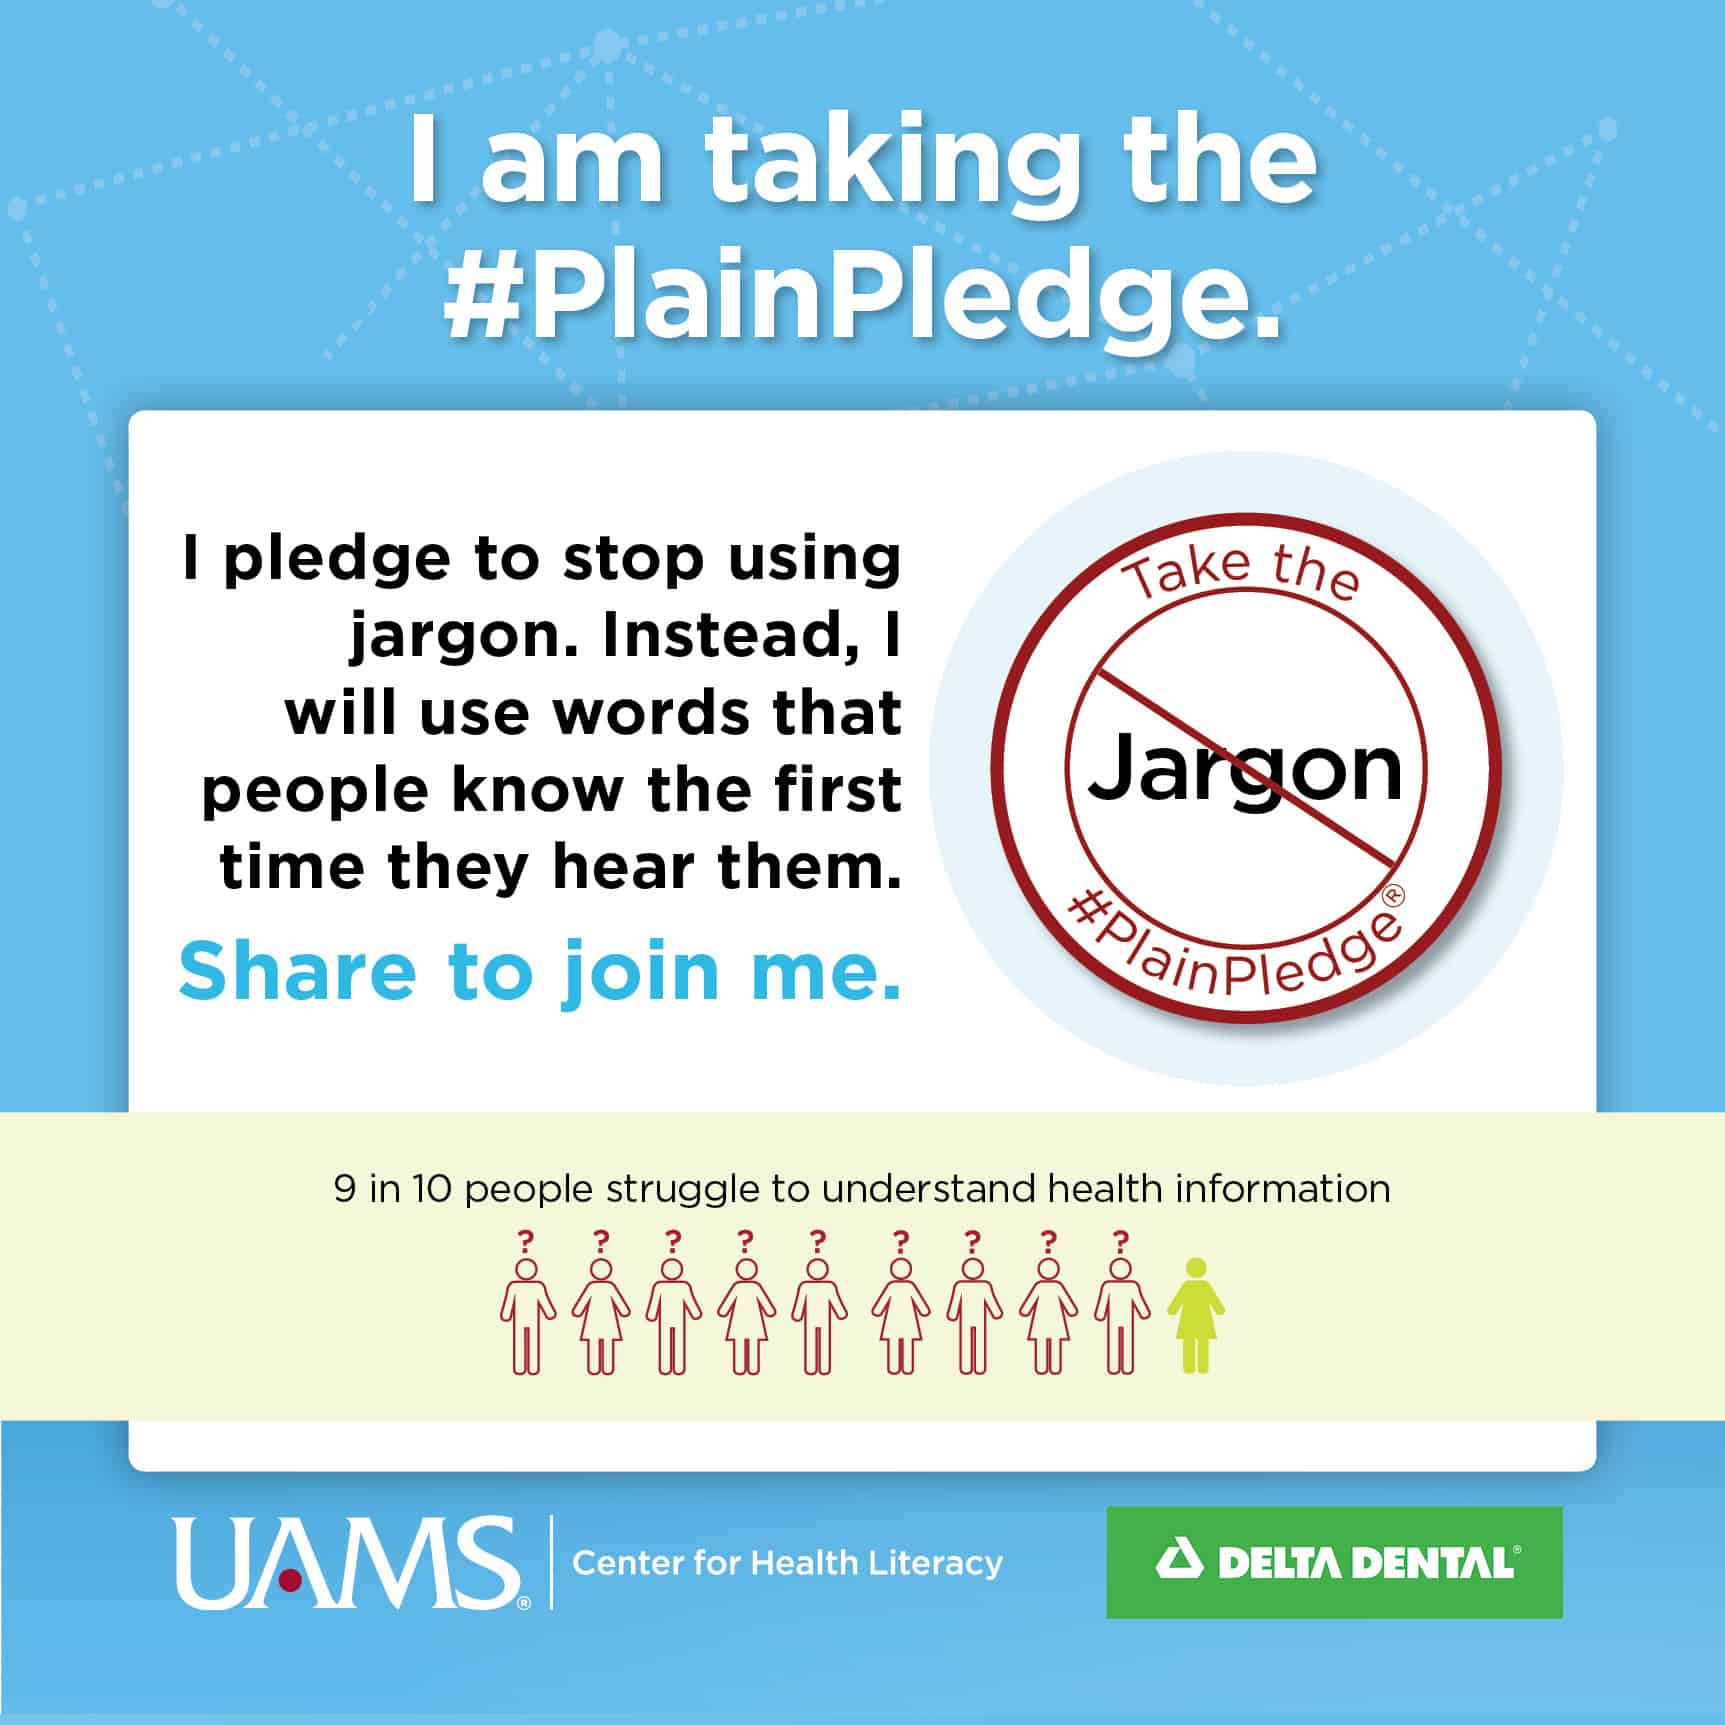 I am taking the #PlainPledge. I pledge to stop using jargon and instead use words that people understand the first time they hear or read them. Because 9 out of 10 people stuggle to understand health information.